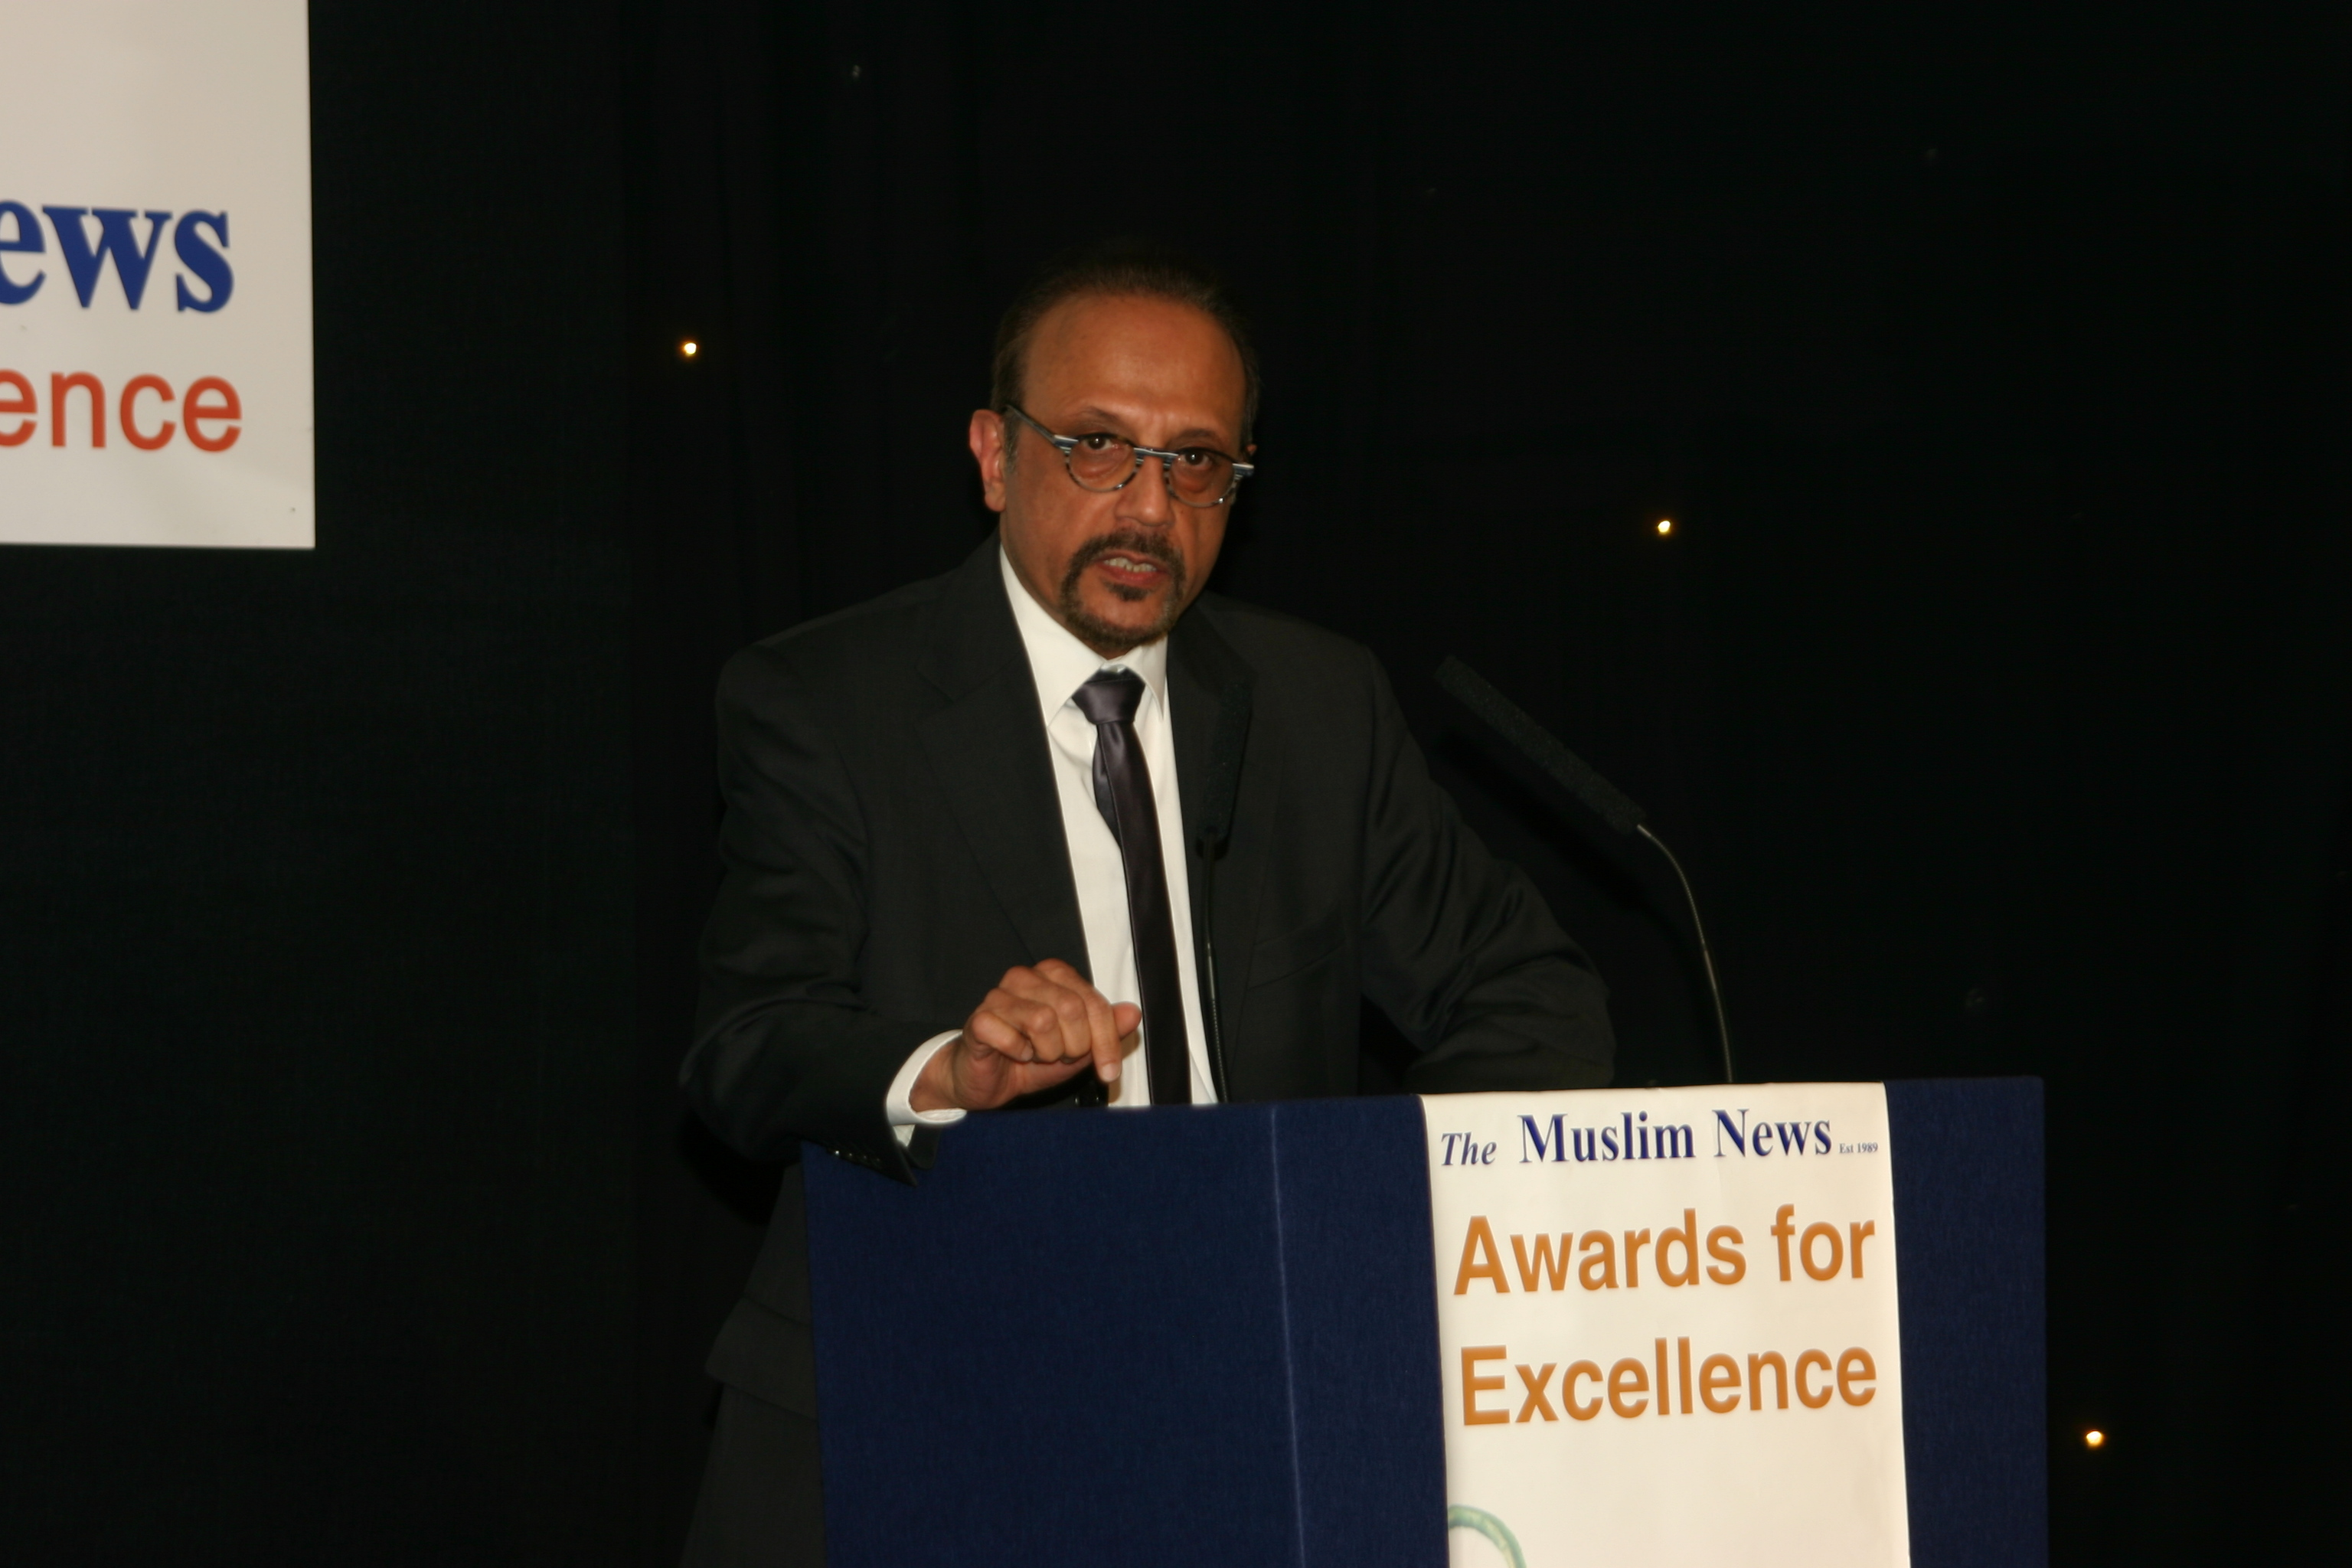 Uk muslims press for peace at 10 downing street - Editor Of The Muslim News Ahmed J Versi Making A Point During His Welcoming Speech At The Muslim News Awards For Excellence Gala Dinner On 25 March